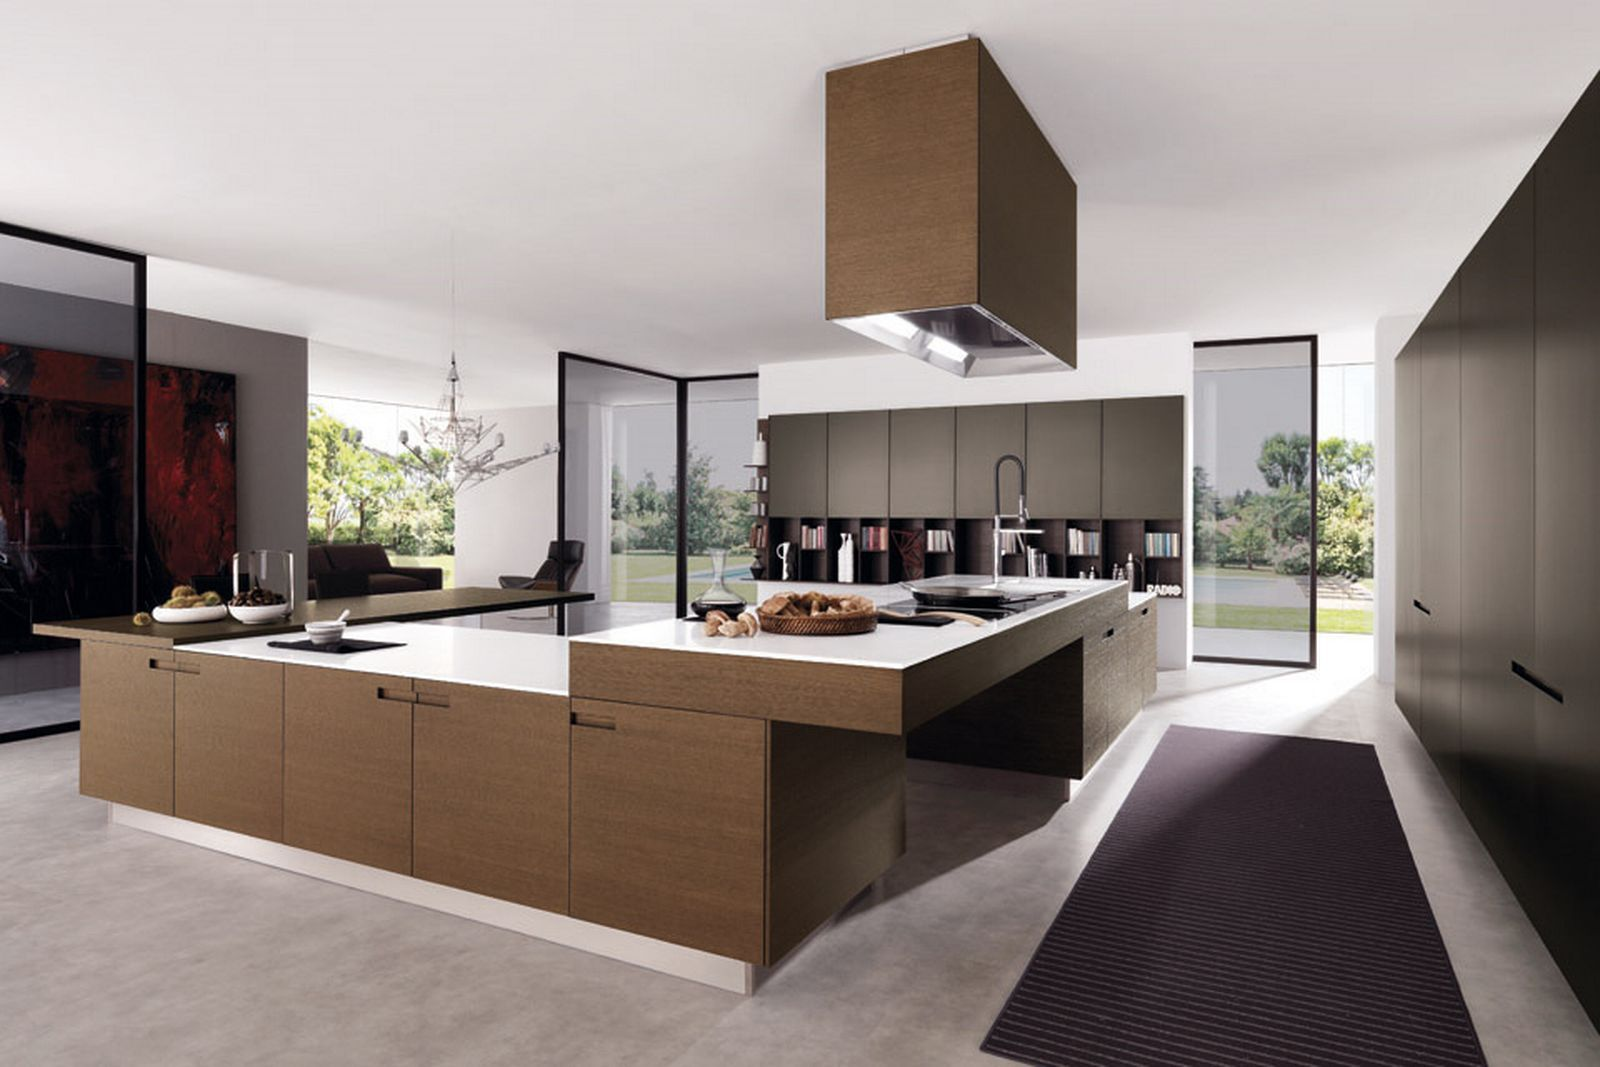 interior design for kitchen - 1000+ images about sapuru.com share on Pinterest Motogp, Kitchen ...